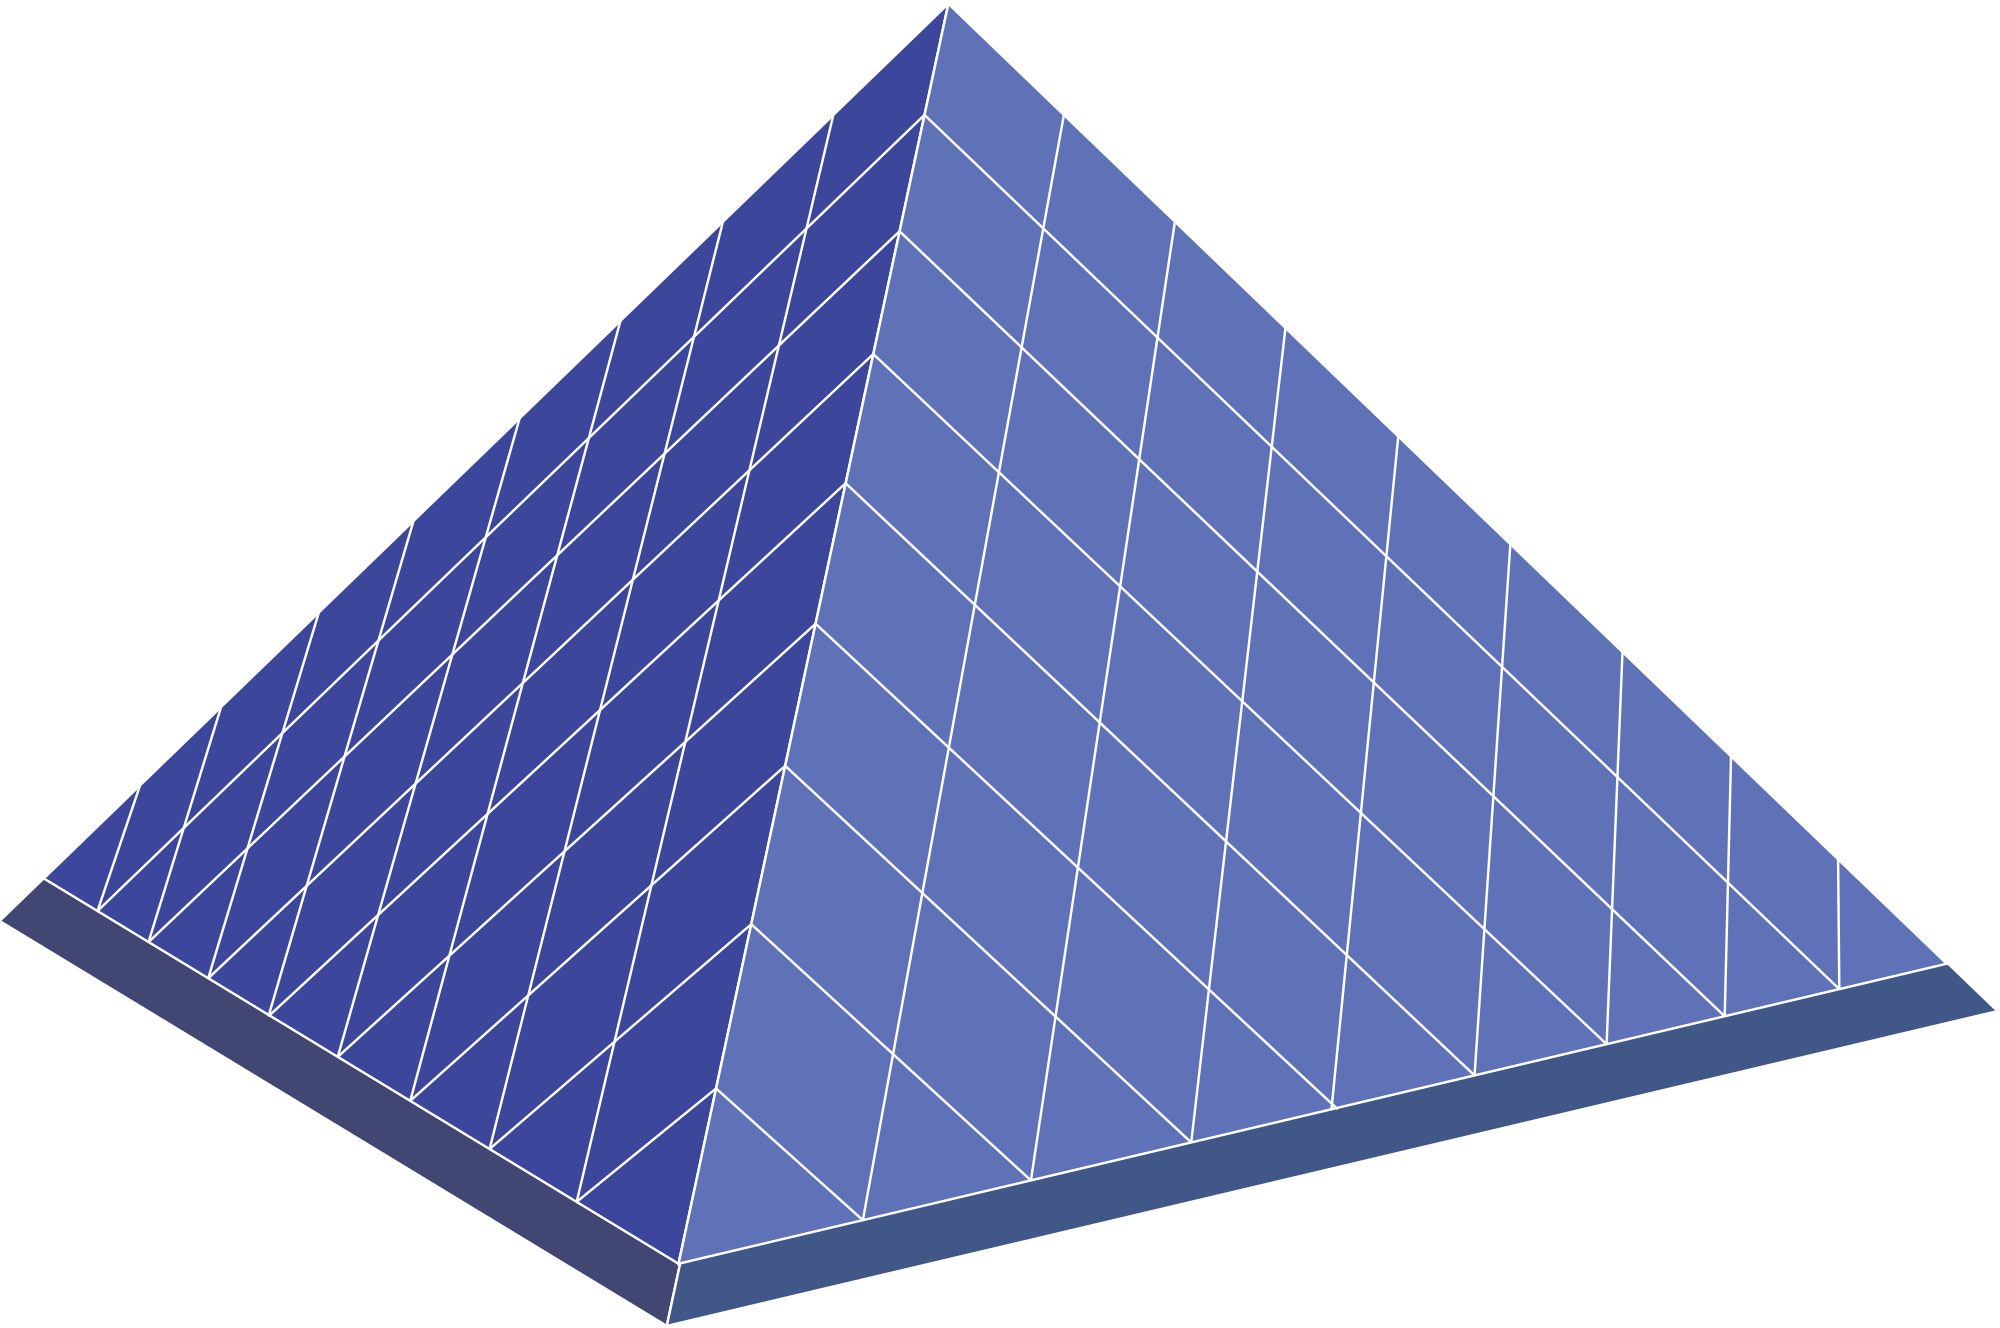 Transparent pyramid louvre. File icon svg wikimedia